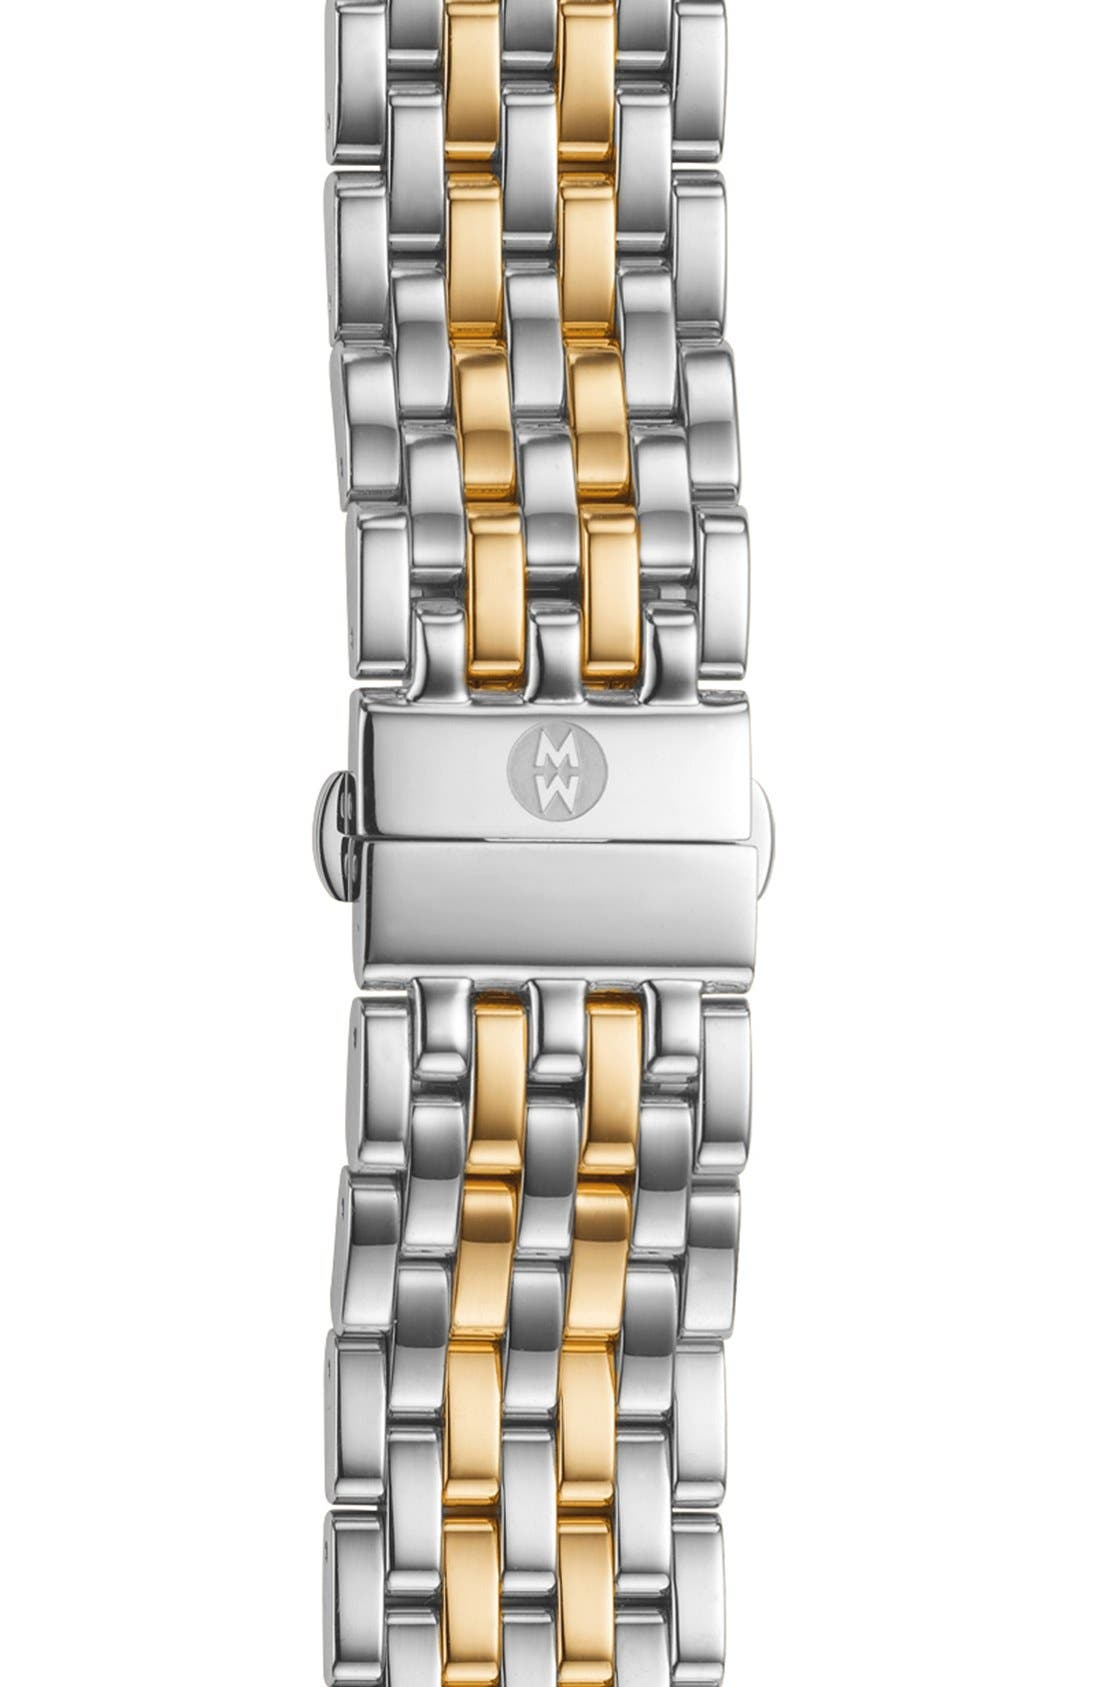 Alternate Image 1 Selected - MICHELE 'Caber' 18mm Stainless Steel Watch Bracelet